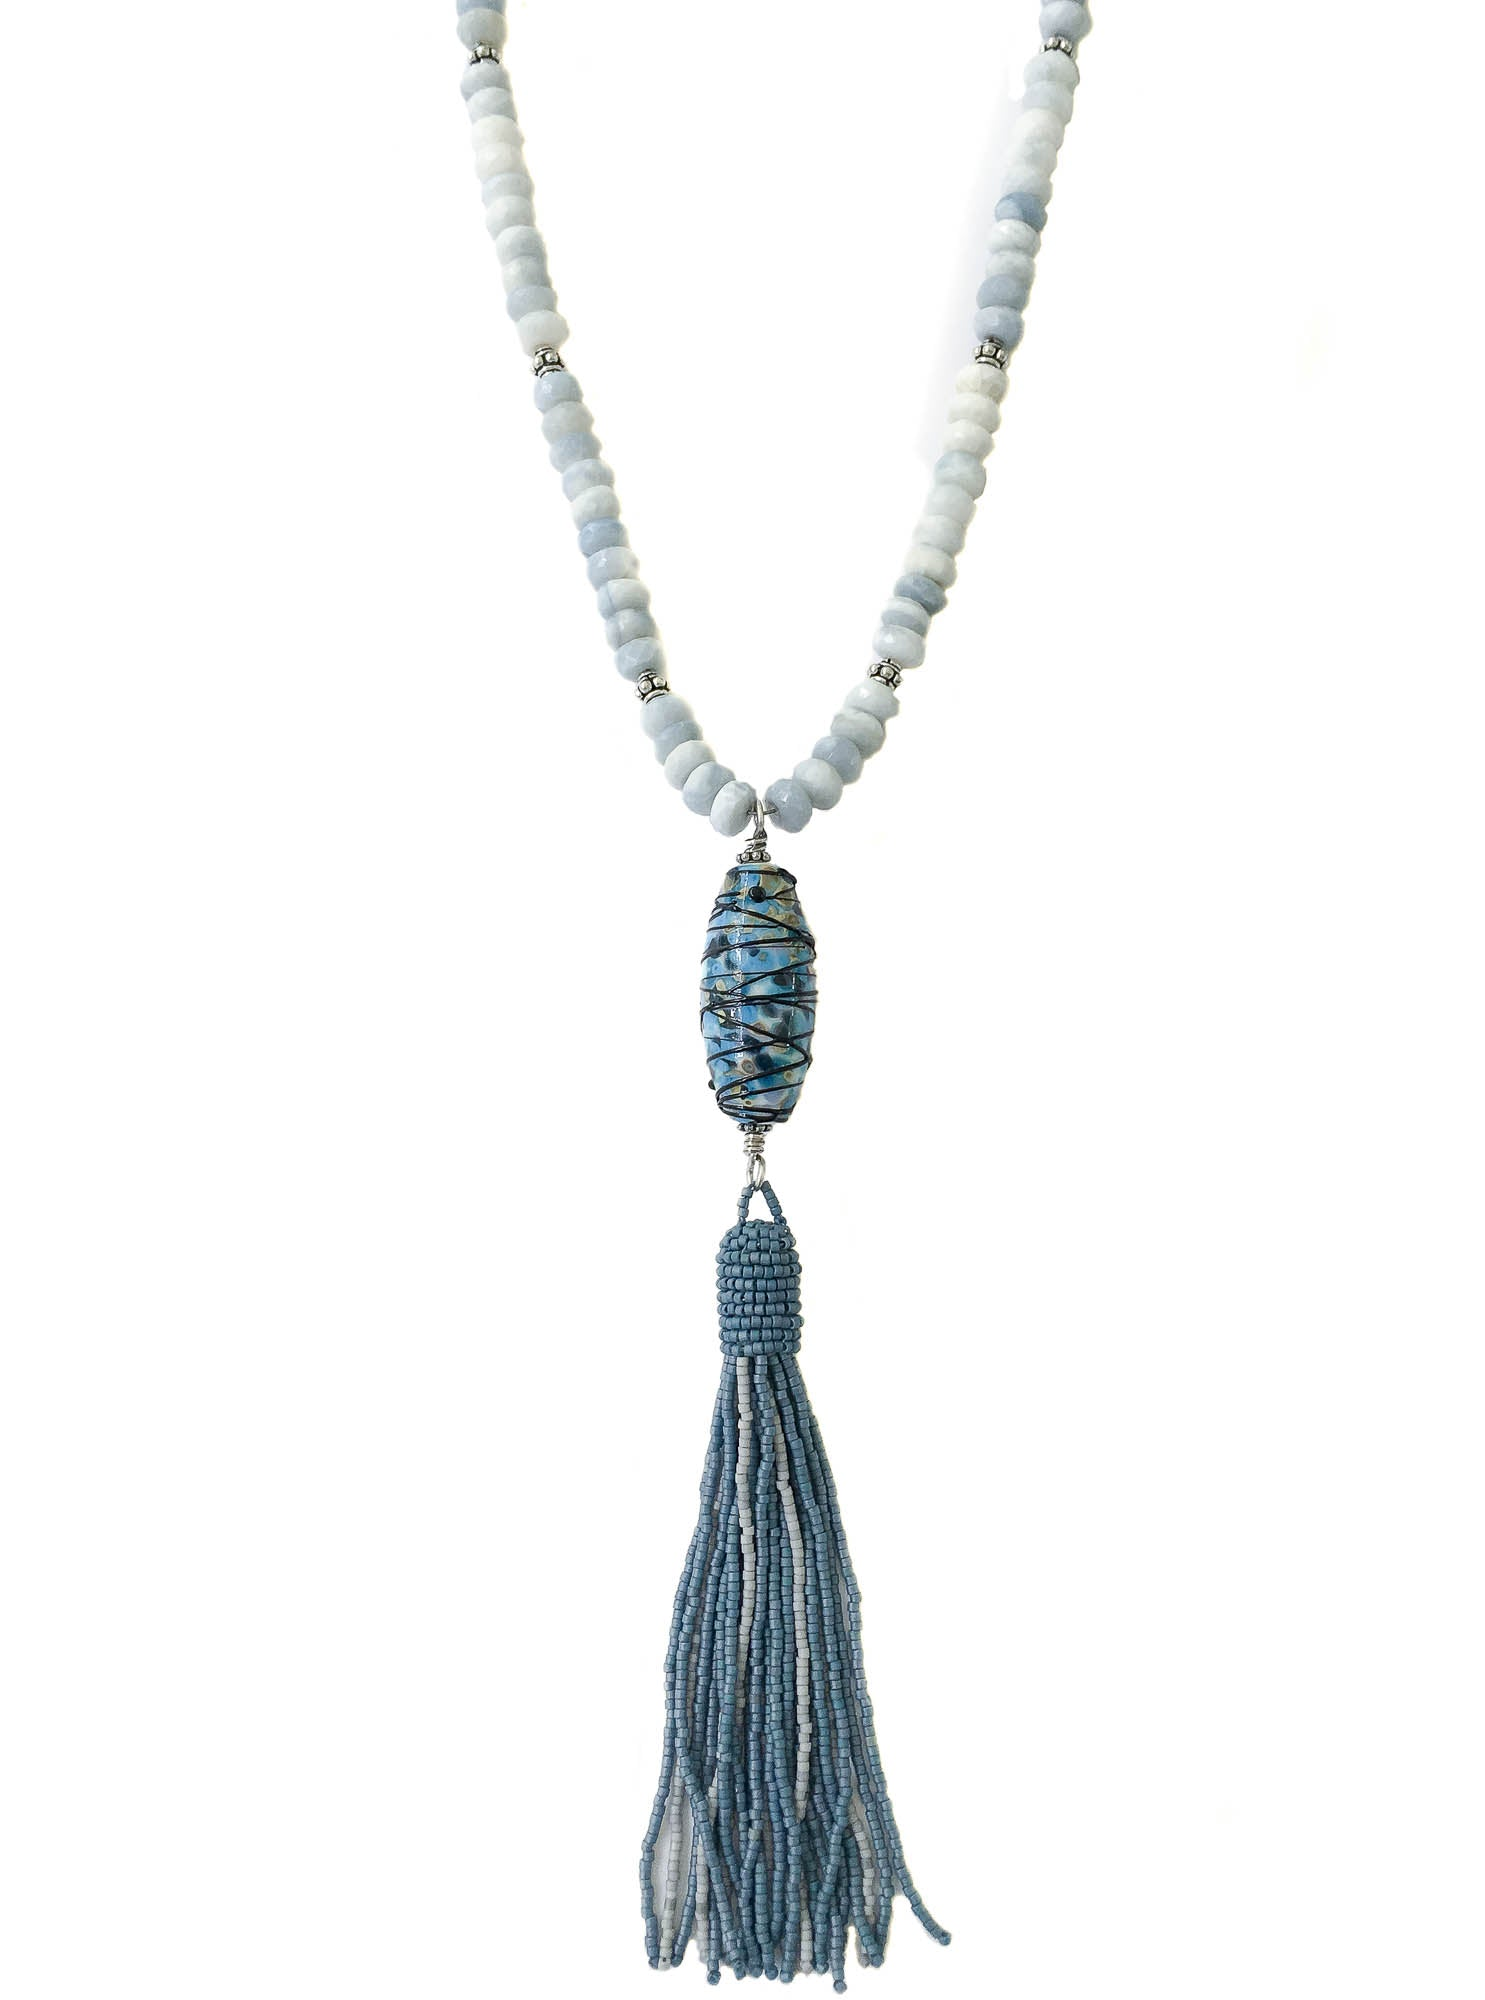 Tassel Necklace – Serenity